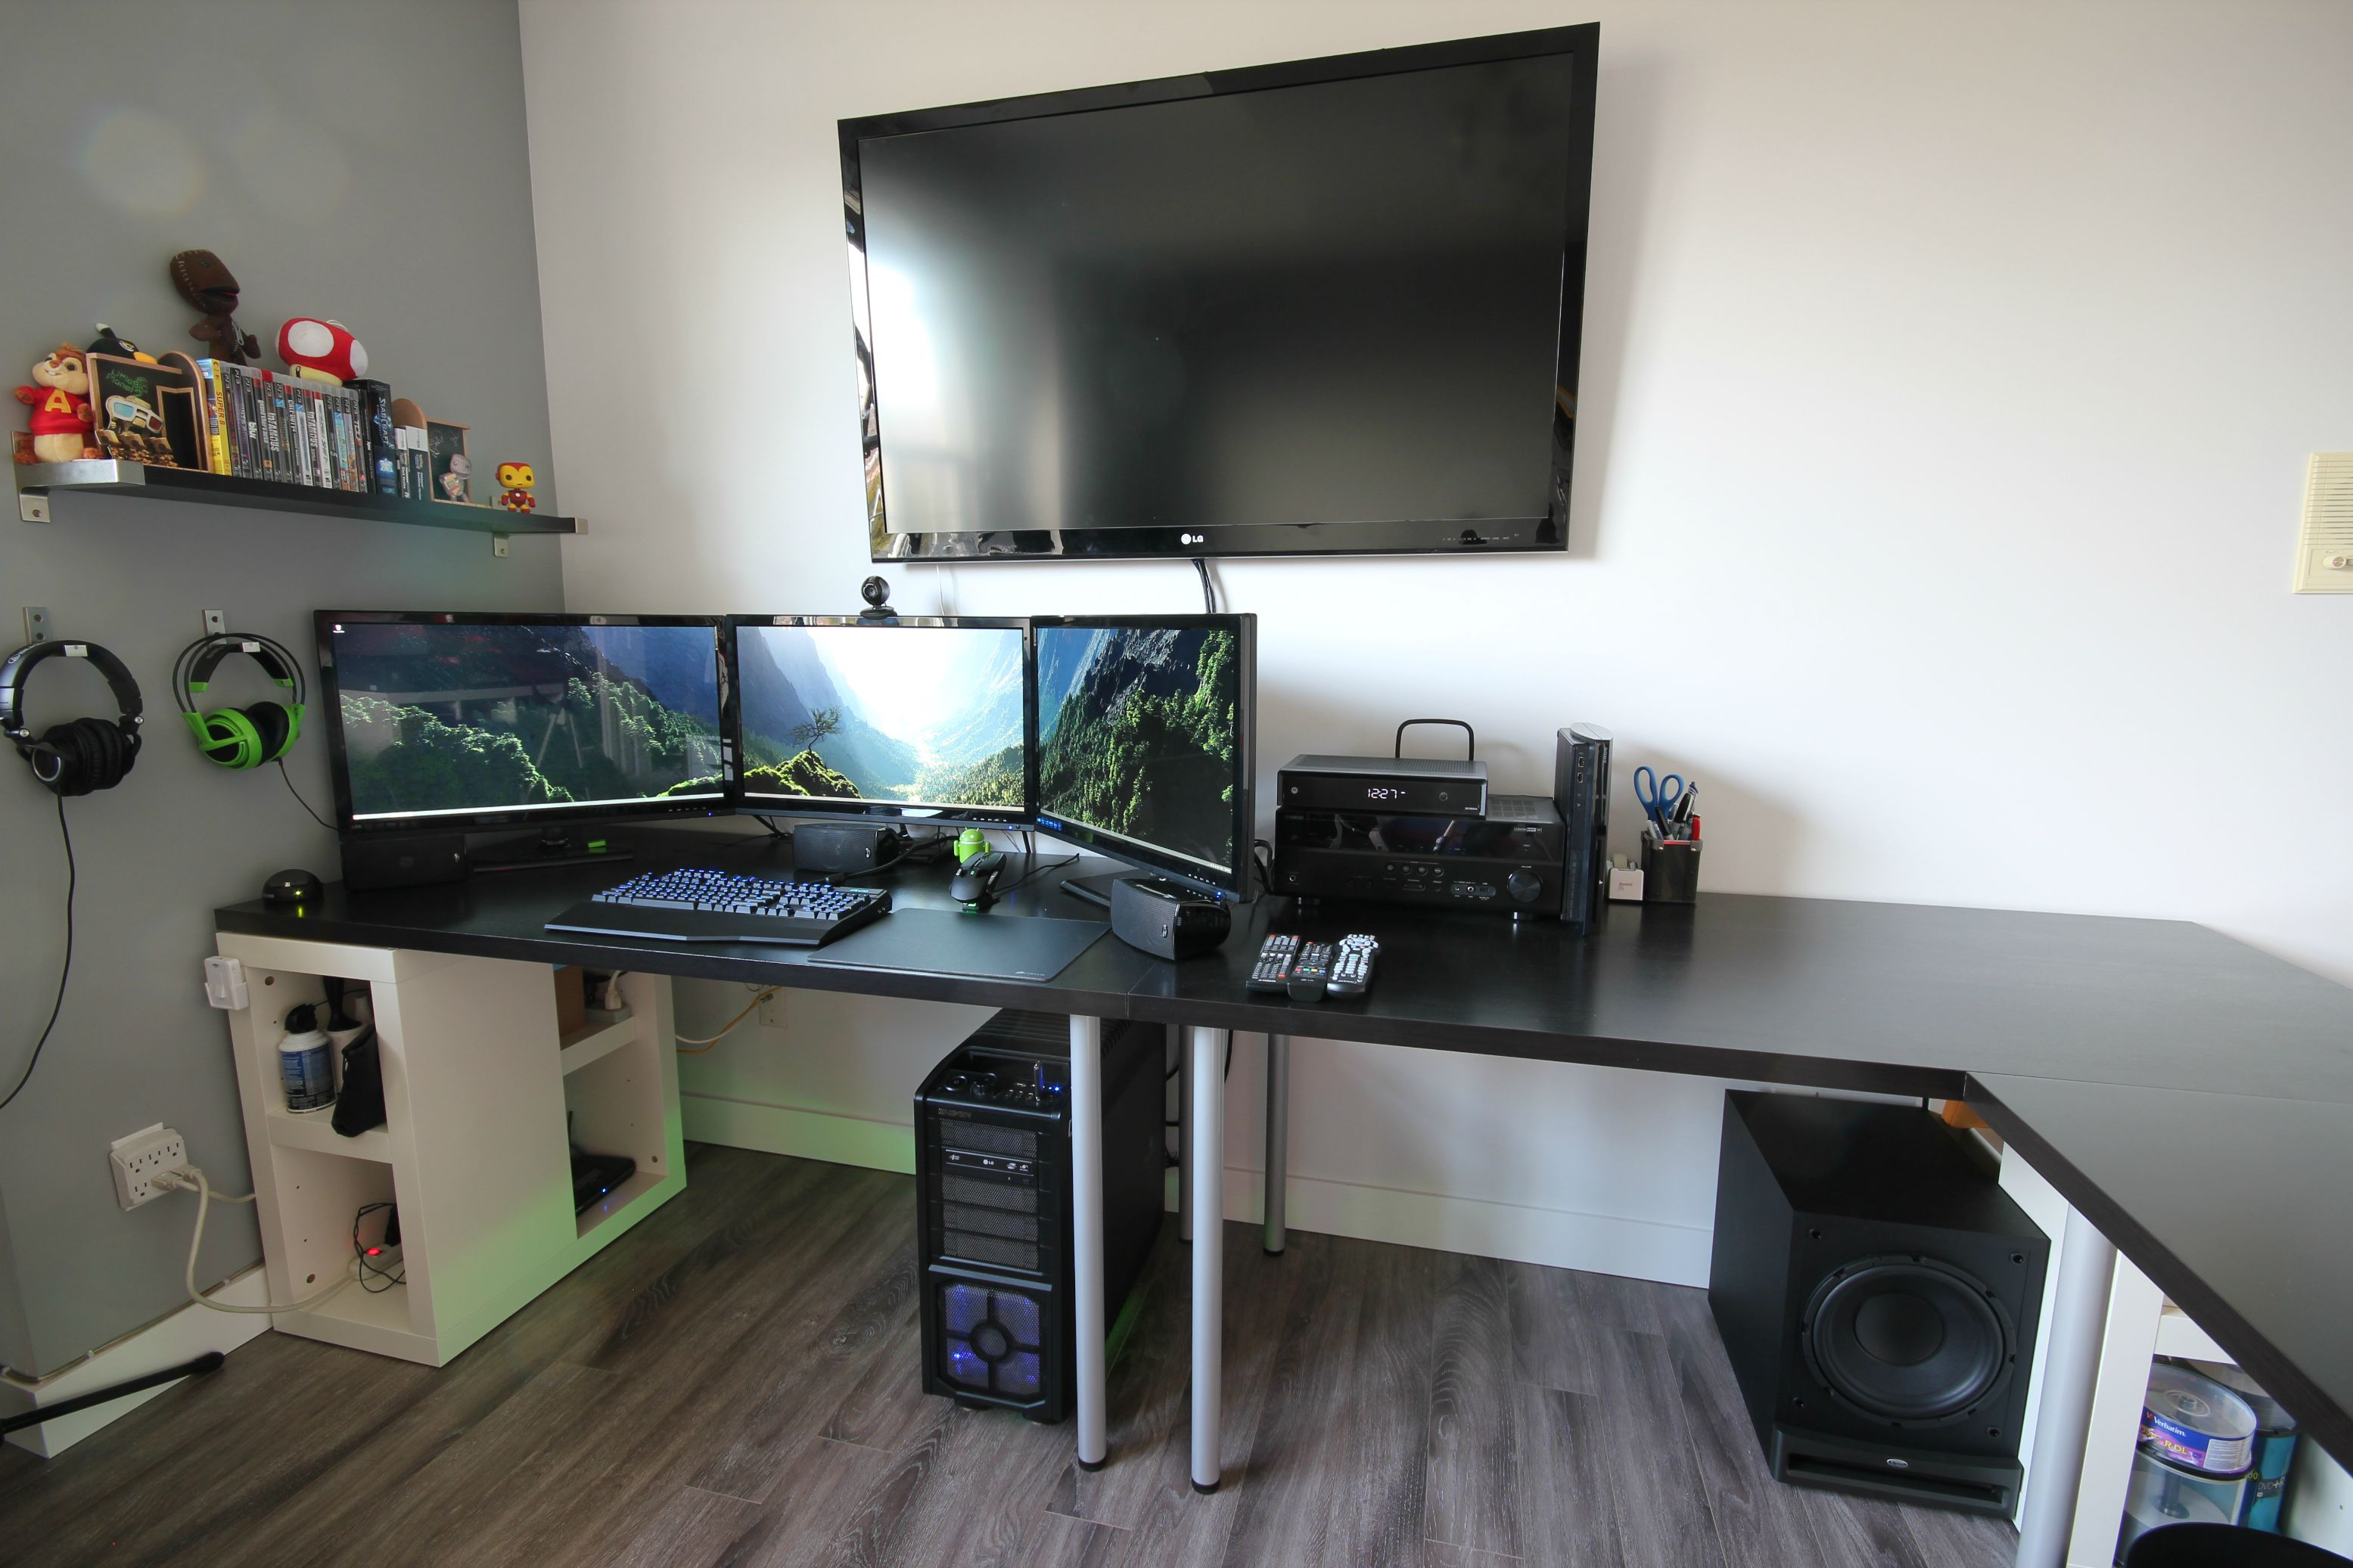 Ikea Linnmon Corner Desk Cool Computer Setups And Gaming Setups